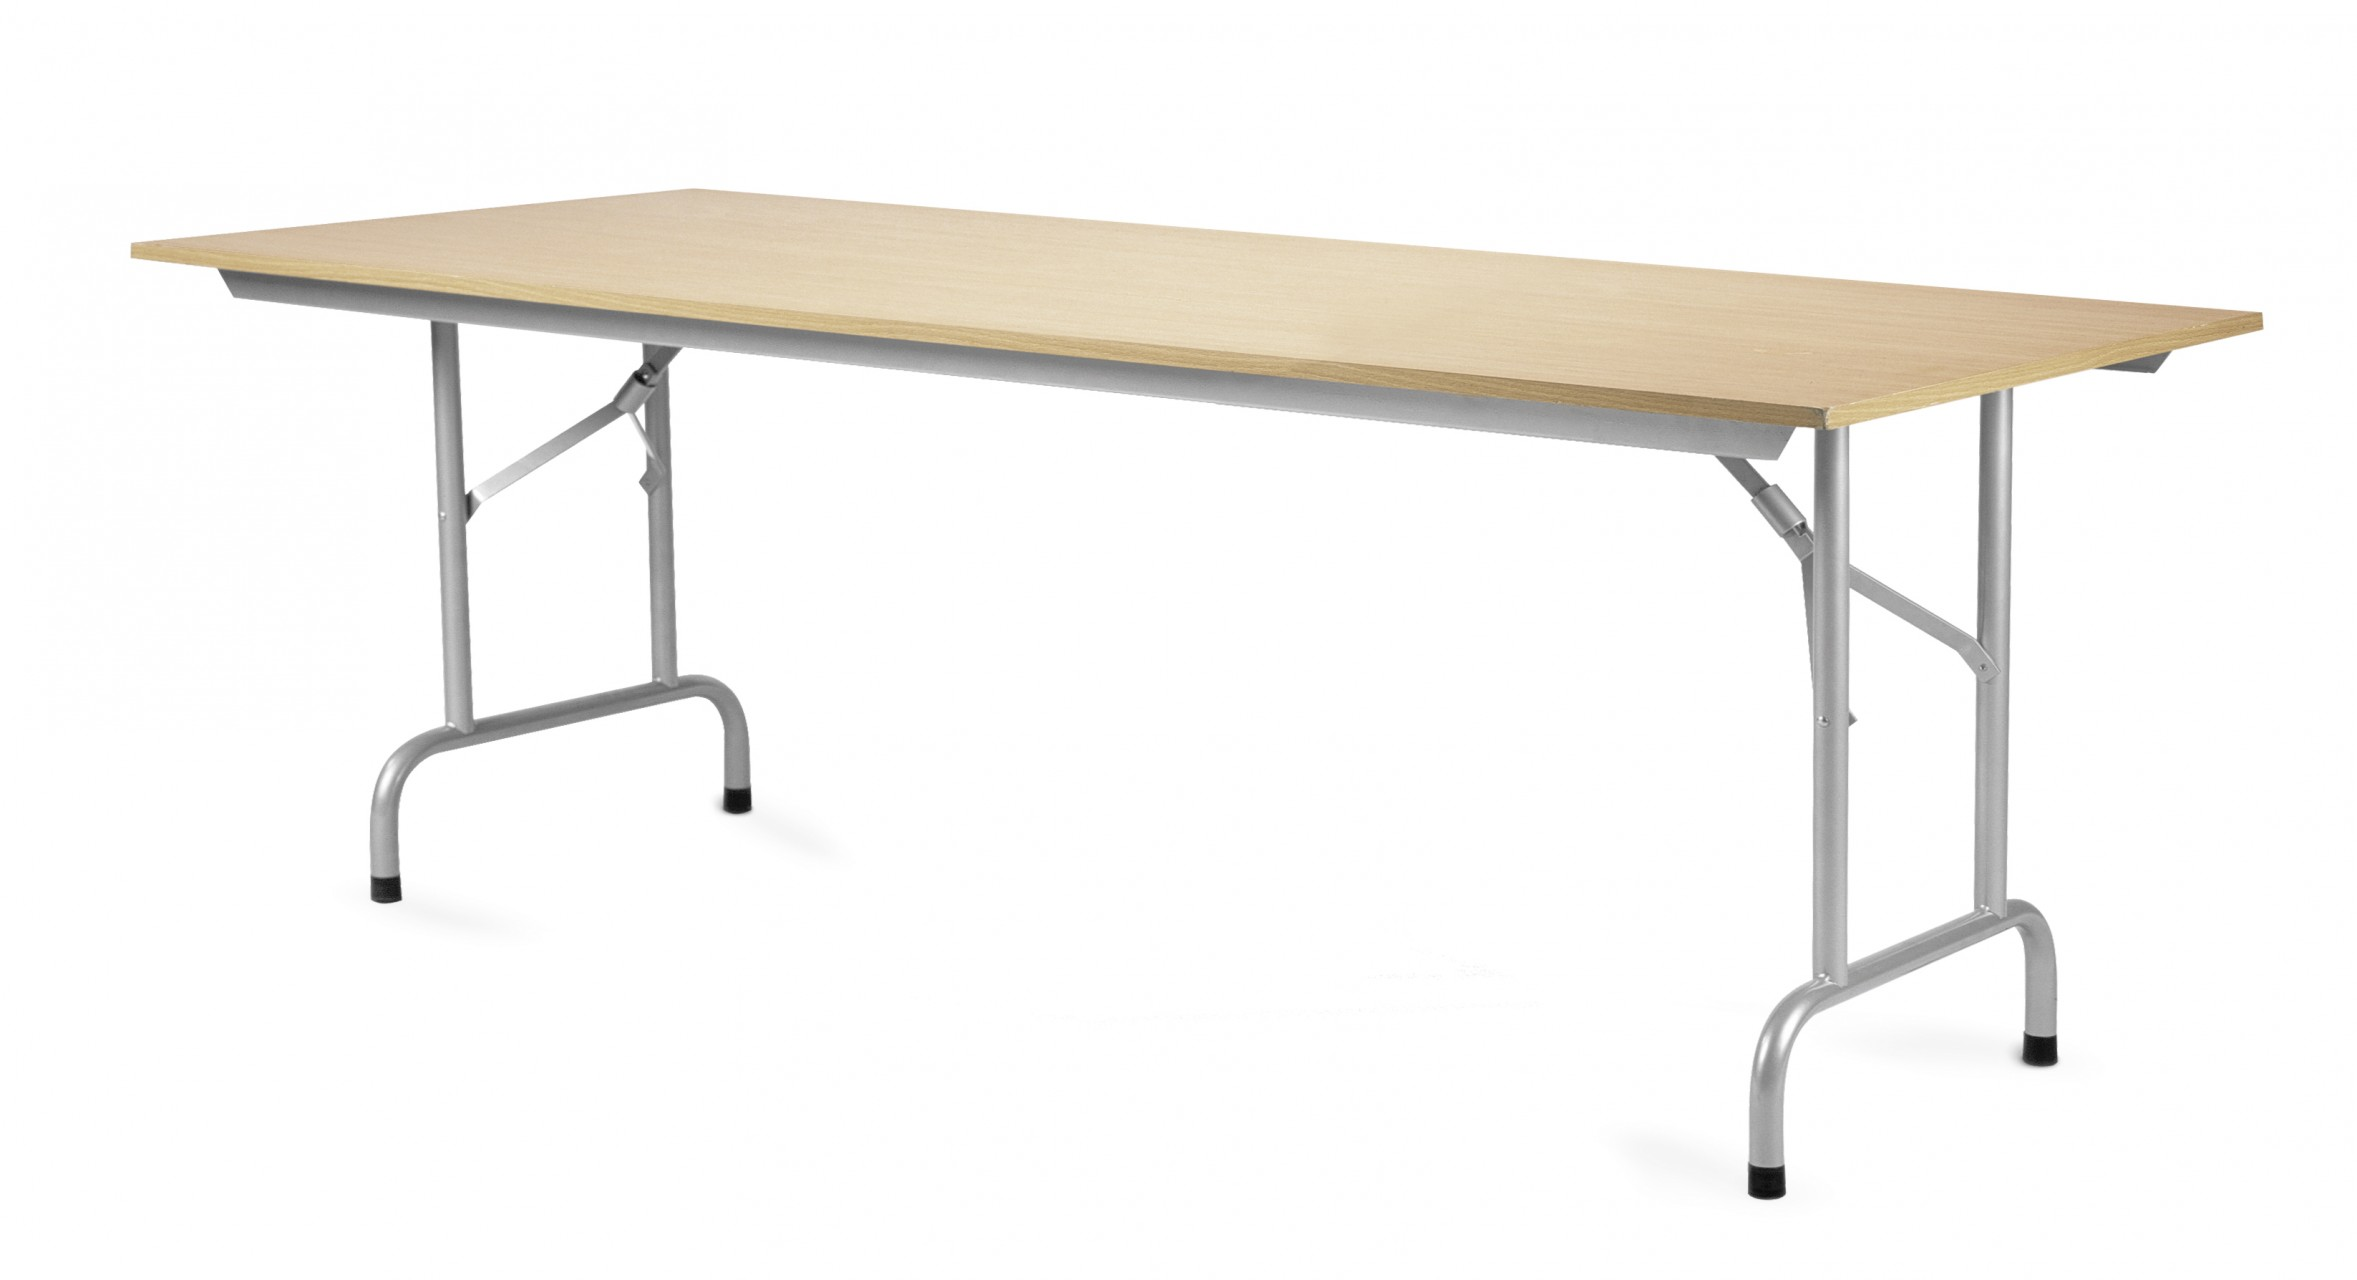 Table pliante rick achat tables pliantes et abattantes 150 00 for Pietement de table pliante